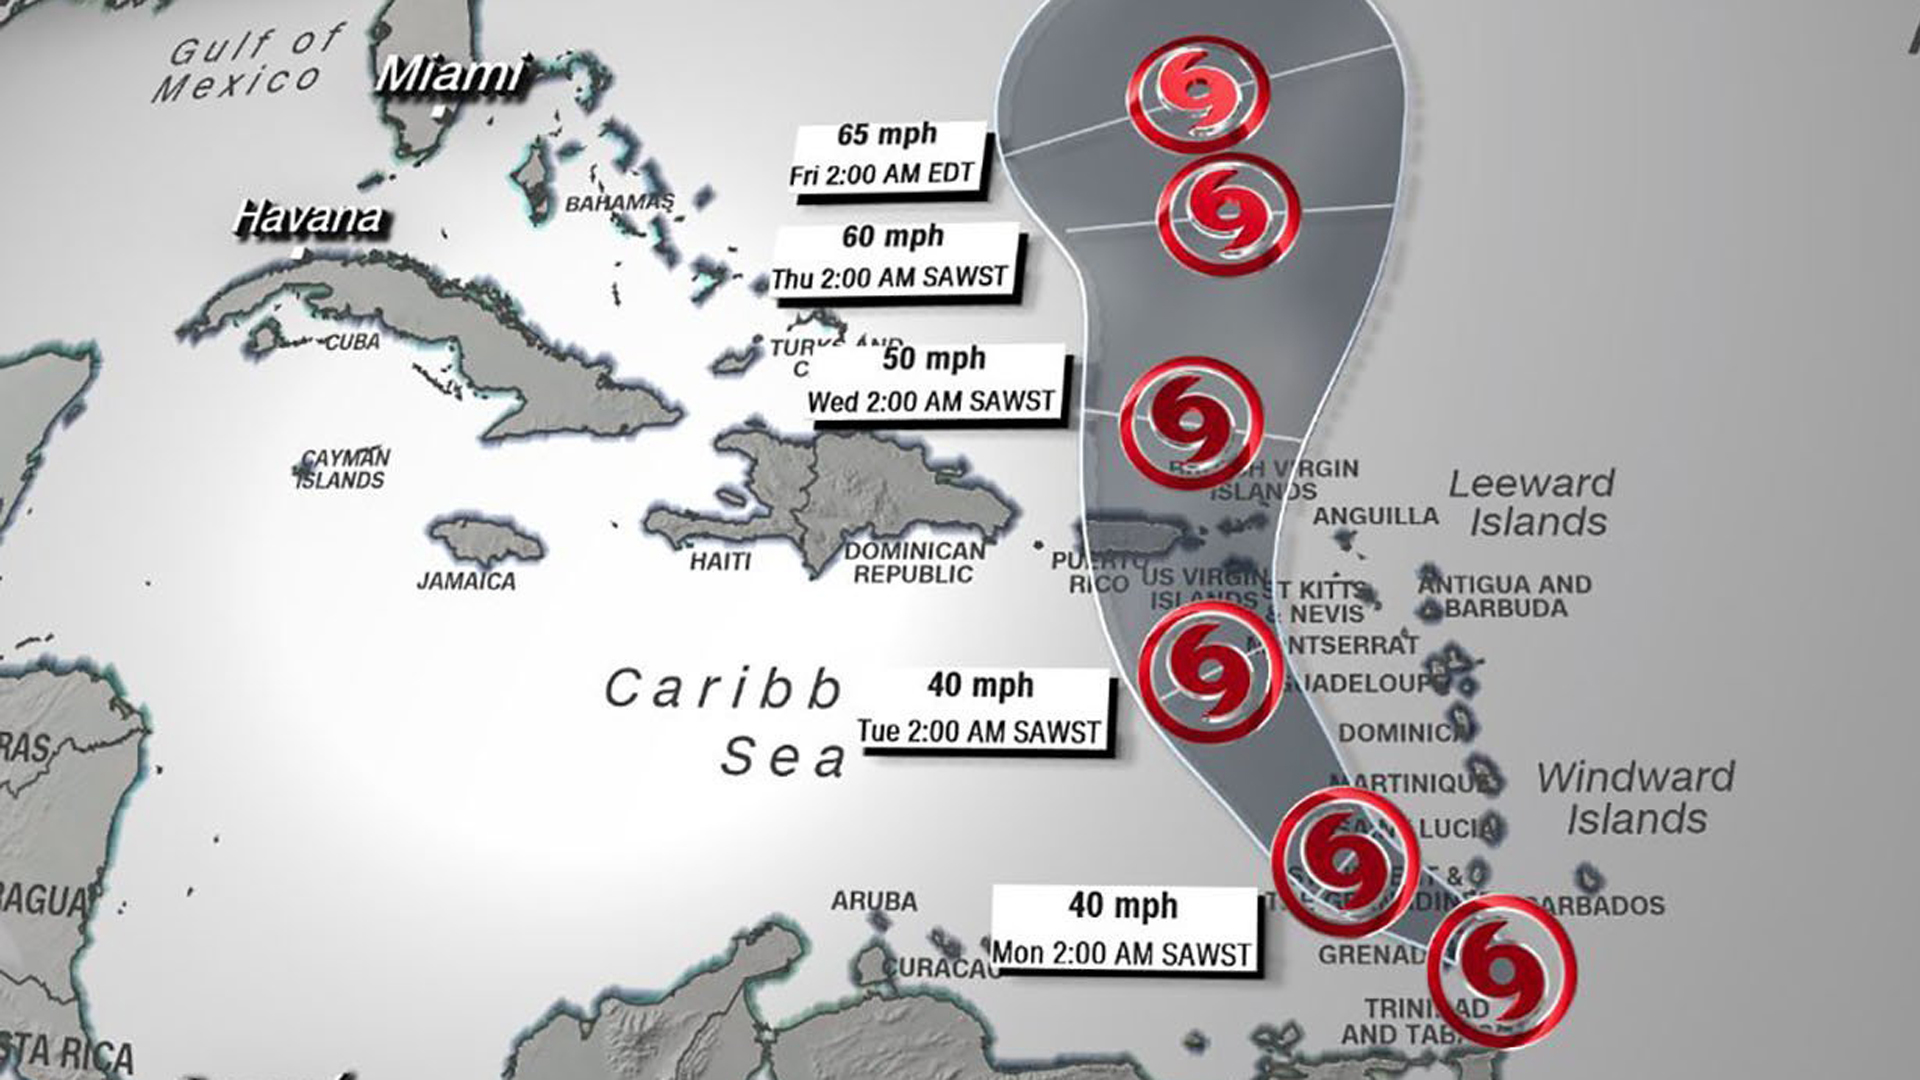 Tropical Storm Karen formed just east of the Windward Islands and has sustained winds of 40 mph. A tropical storm warning has been issued for Trinidad and Tobago, along with Grenada and its dependencies. (Credit: CNN)